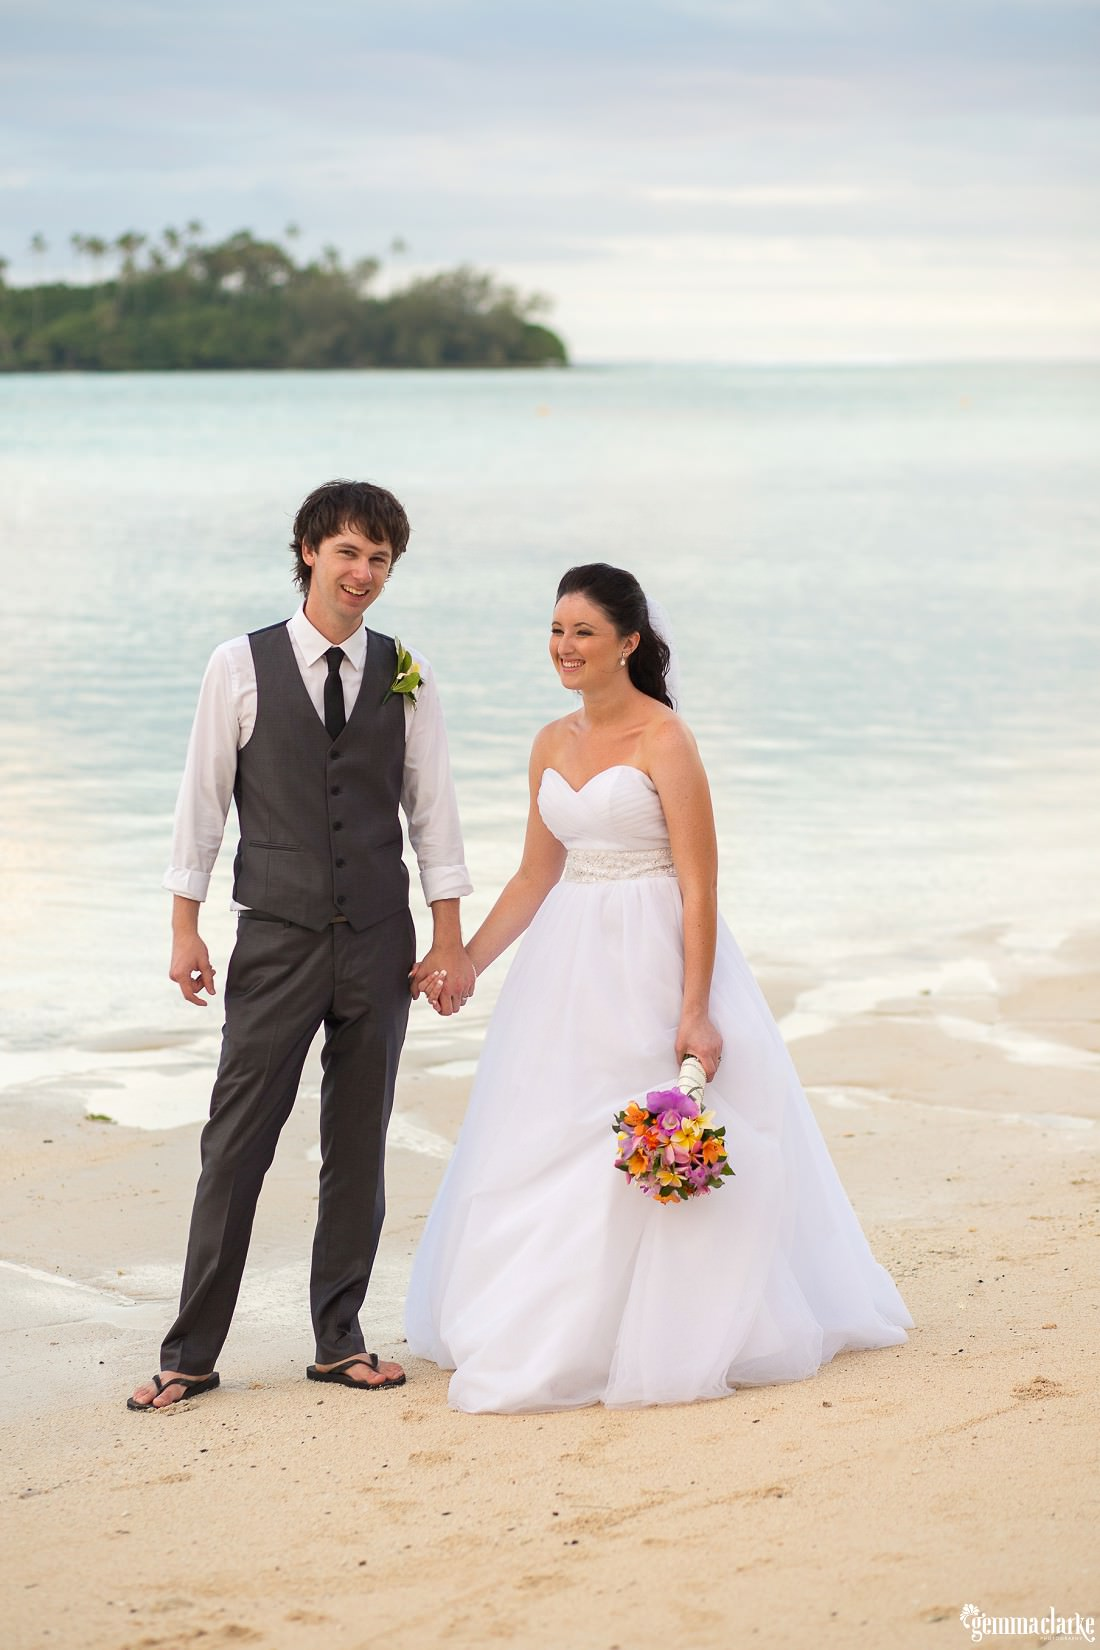 gemmaclarkephotography_south-pacific-destination-wedding_island-wedding_natalie-and-alex_0077